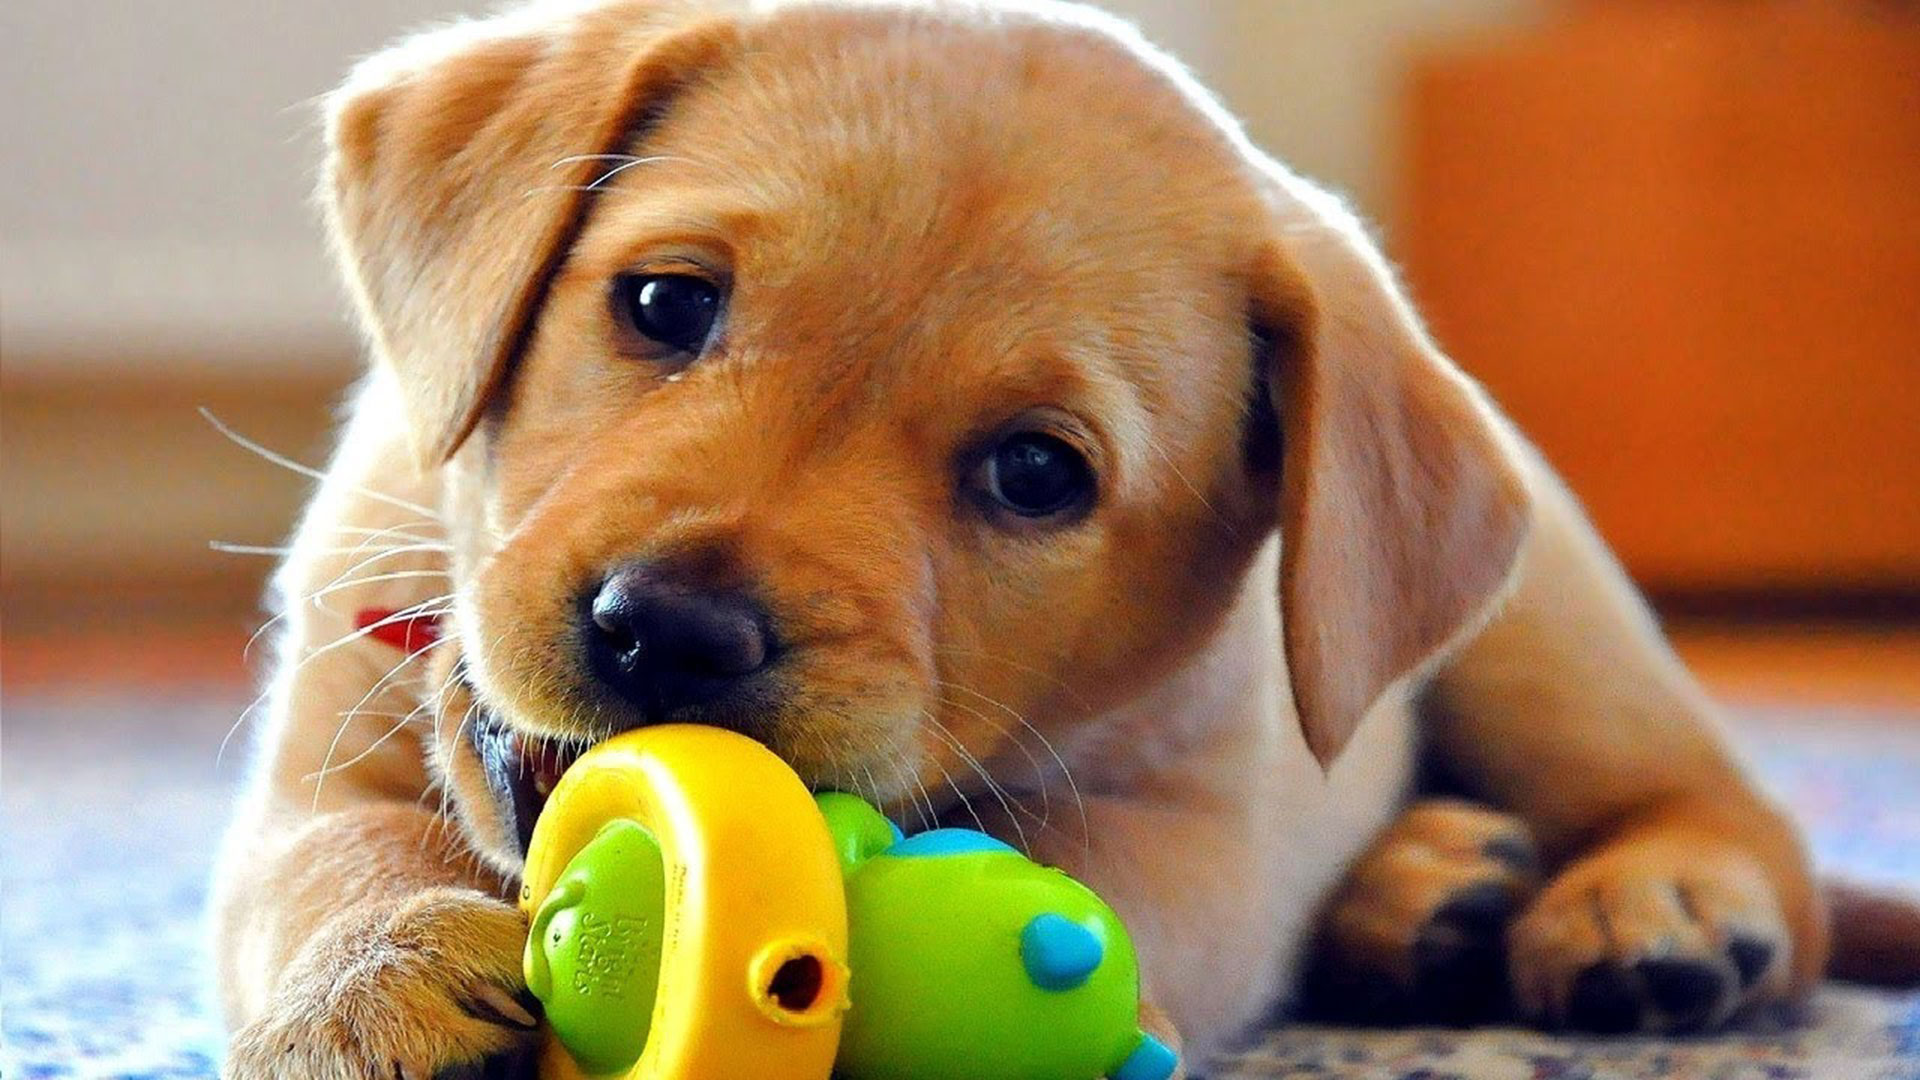 cute-dog-play-with-toy1920x1080-wallpaper-wpc5803828